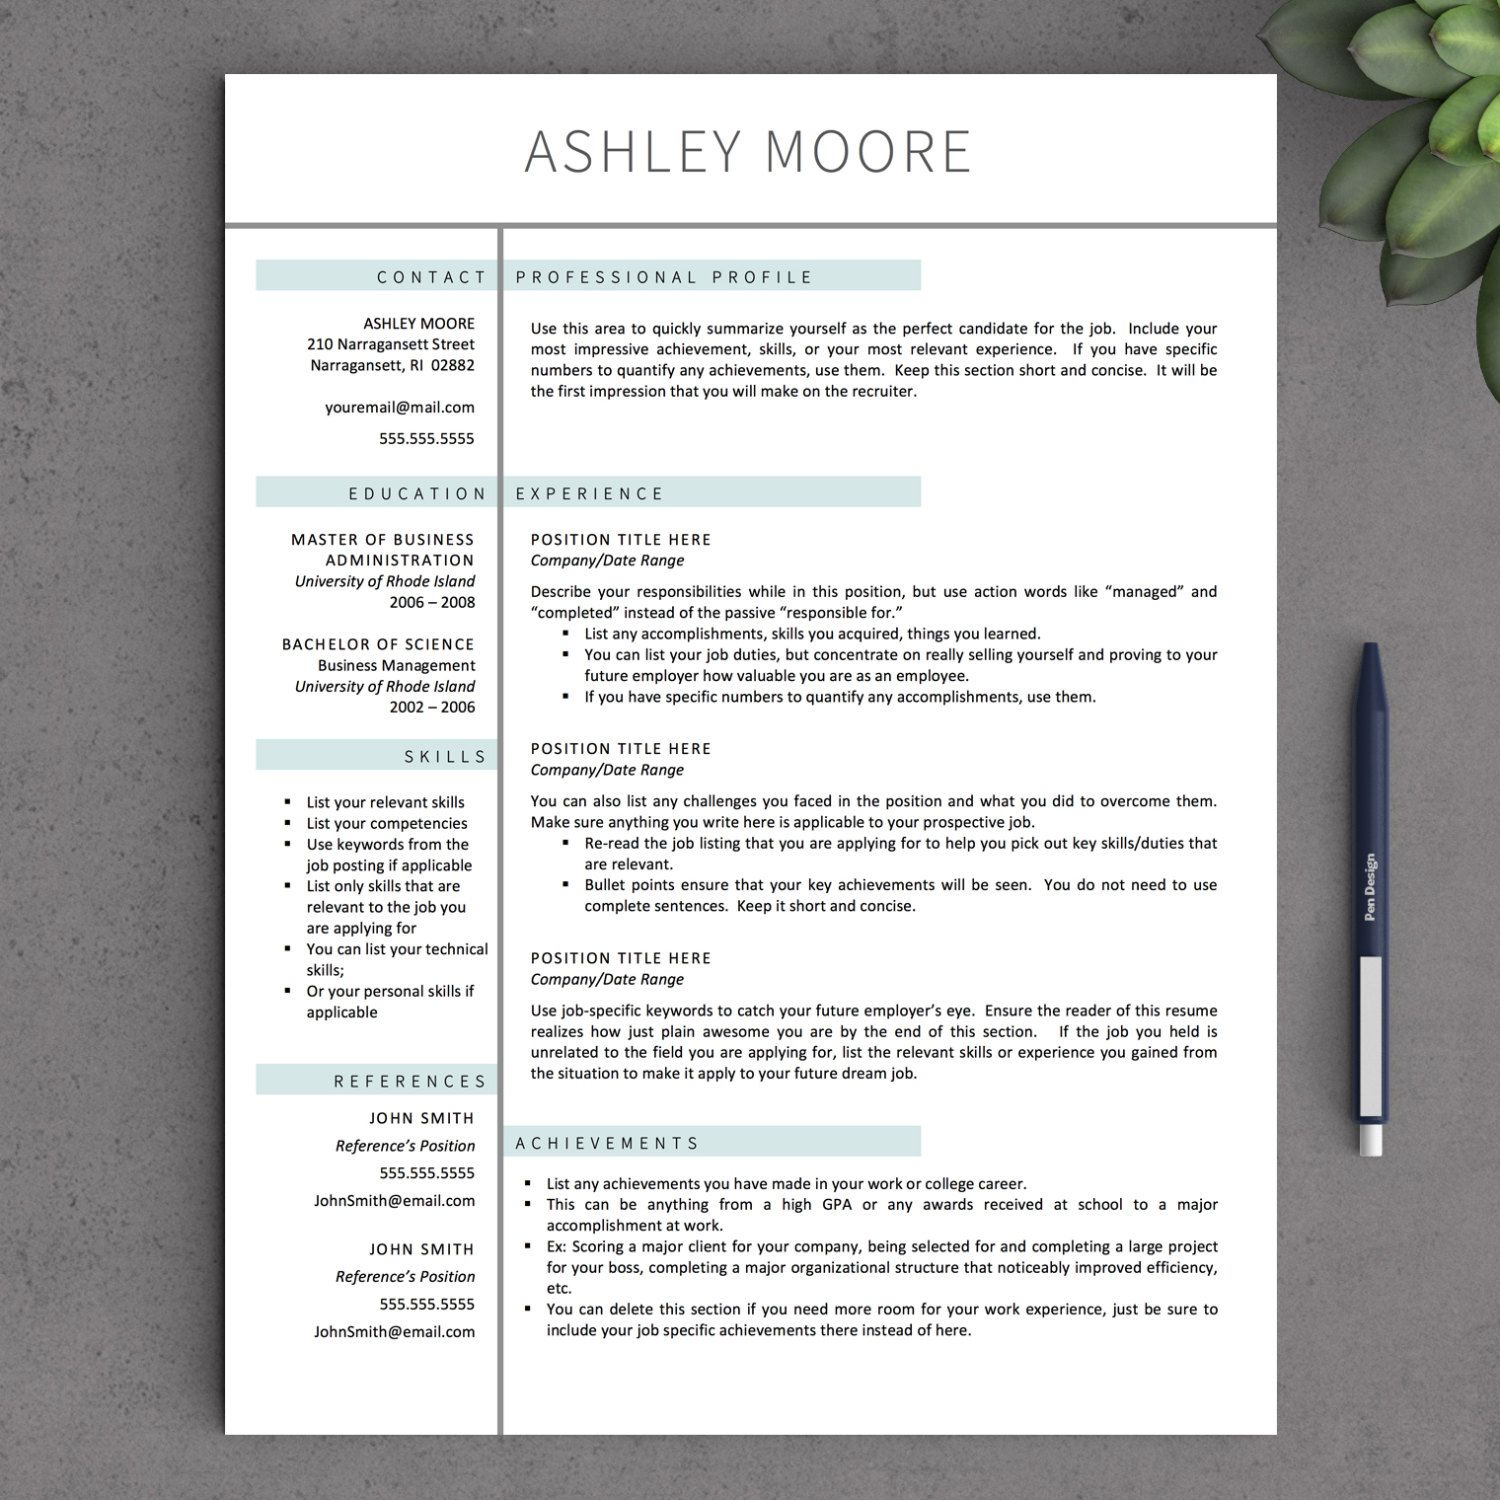 apple pages resume template download apple pages resume template download apple - Free Mac Resume Templates